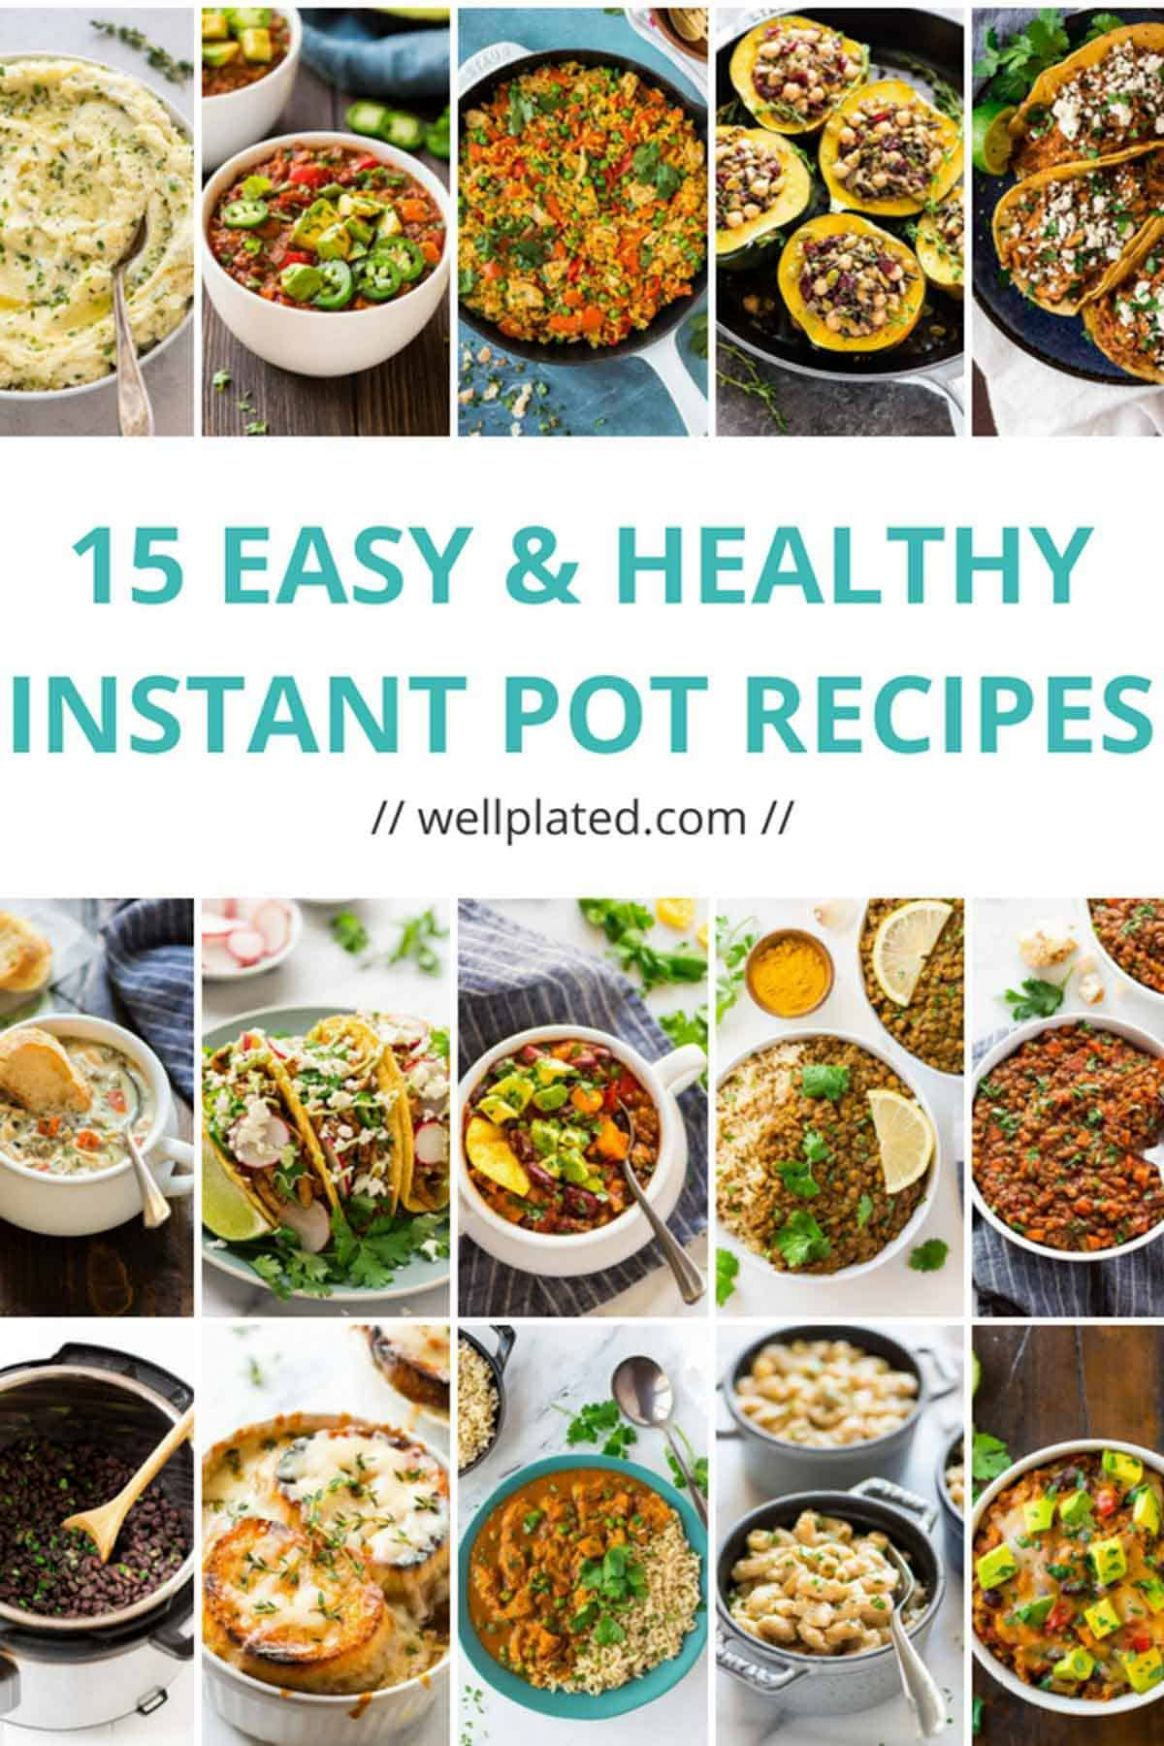 10 Healthy Instant Pot Recipes That Anyone Can Make